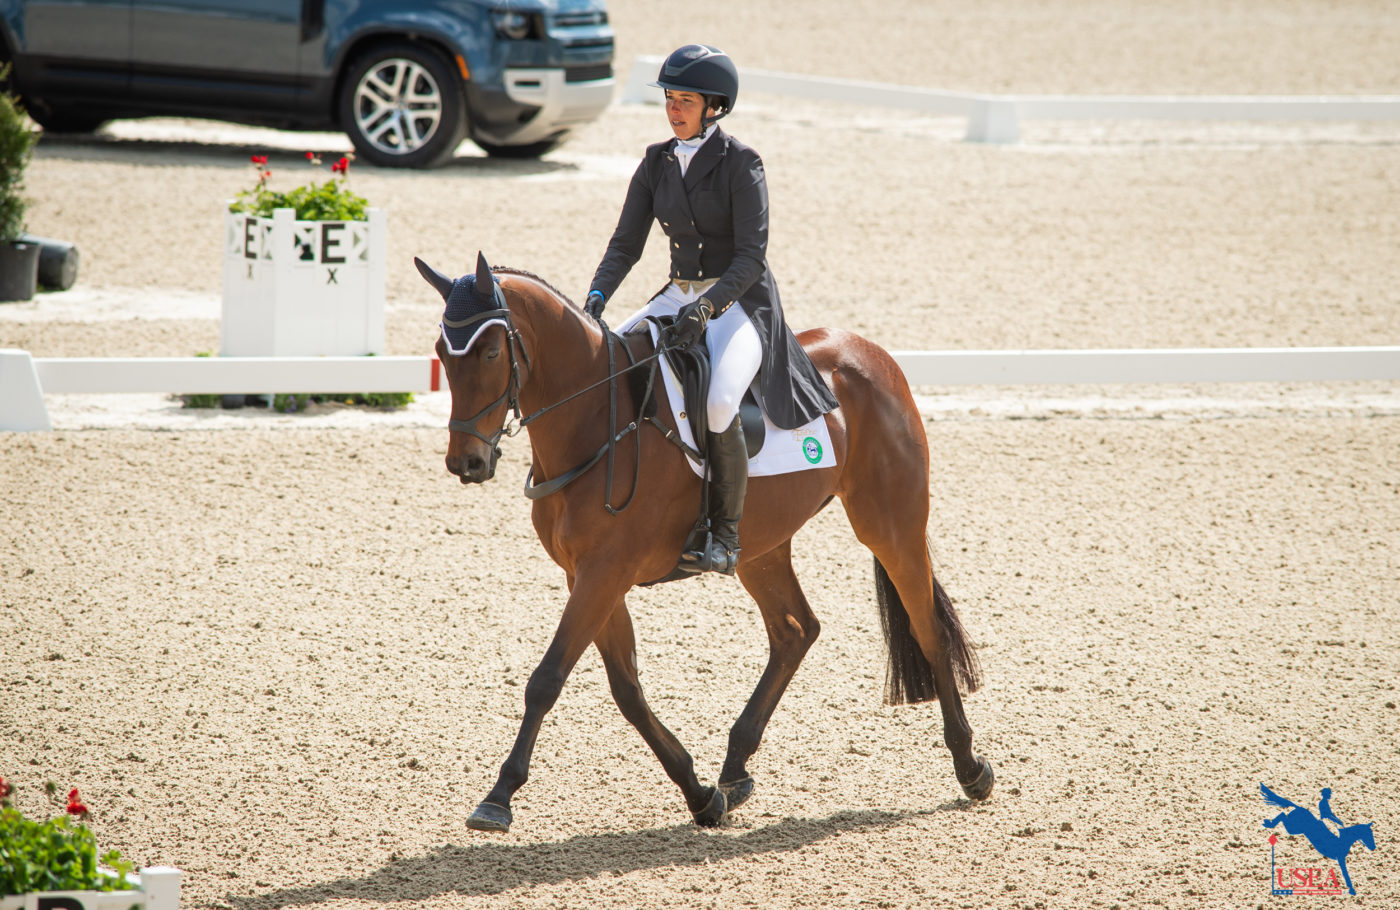 9th - Meghan O'Donoghue and Palm Crescent - 32.8. Erin Gilmore Photo.